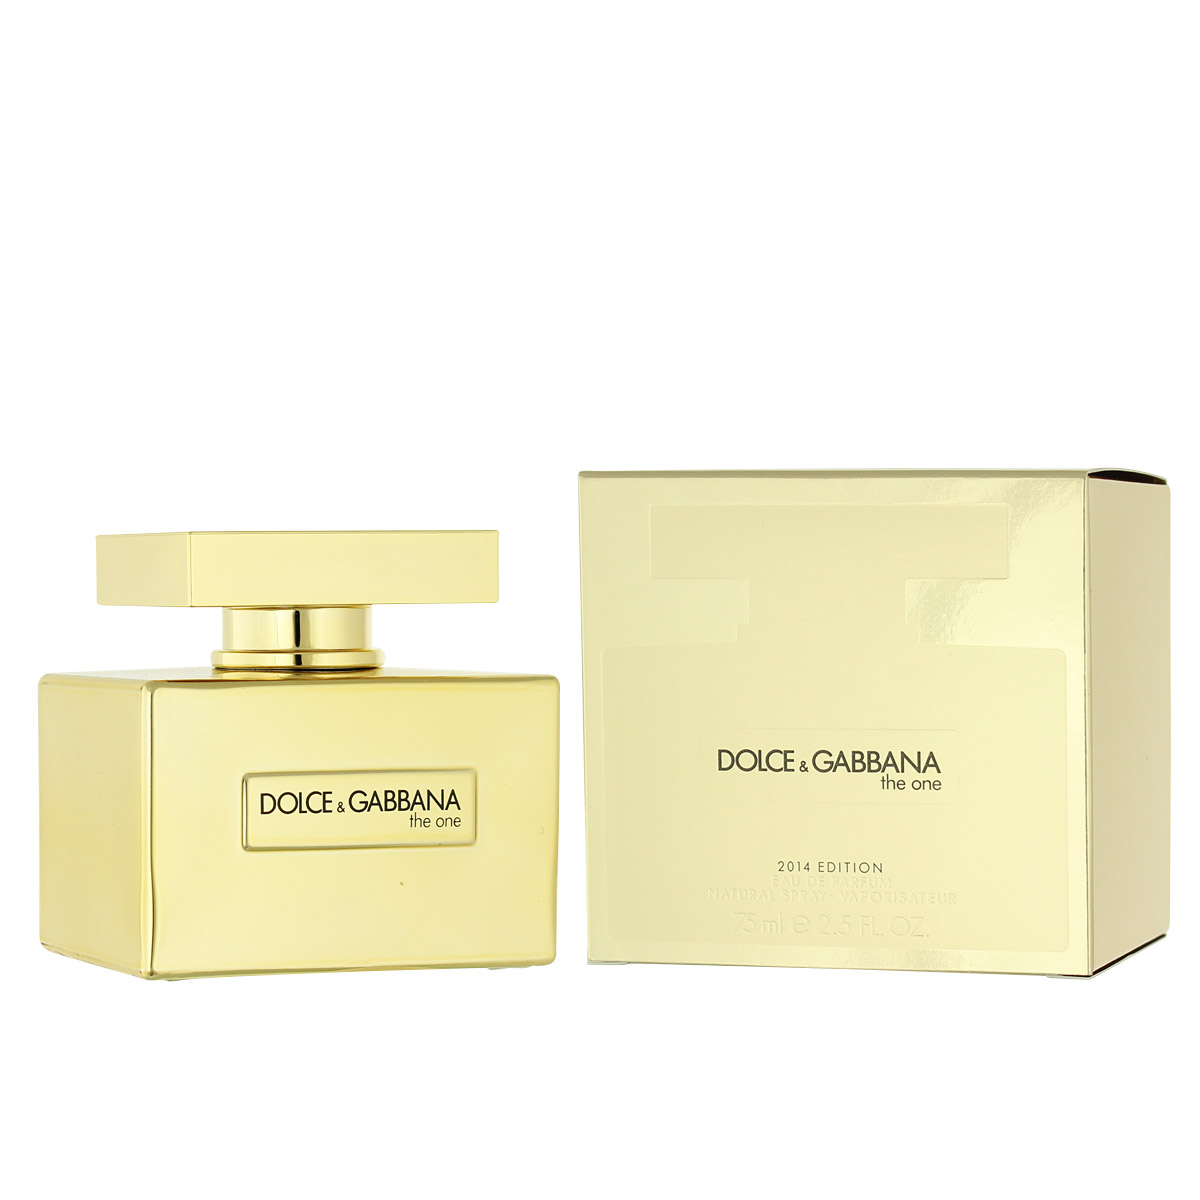 Dolce & Gabbana The One 2014 Edition for women EDP 75 ml W